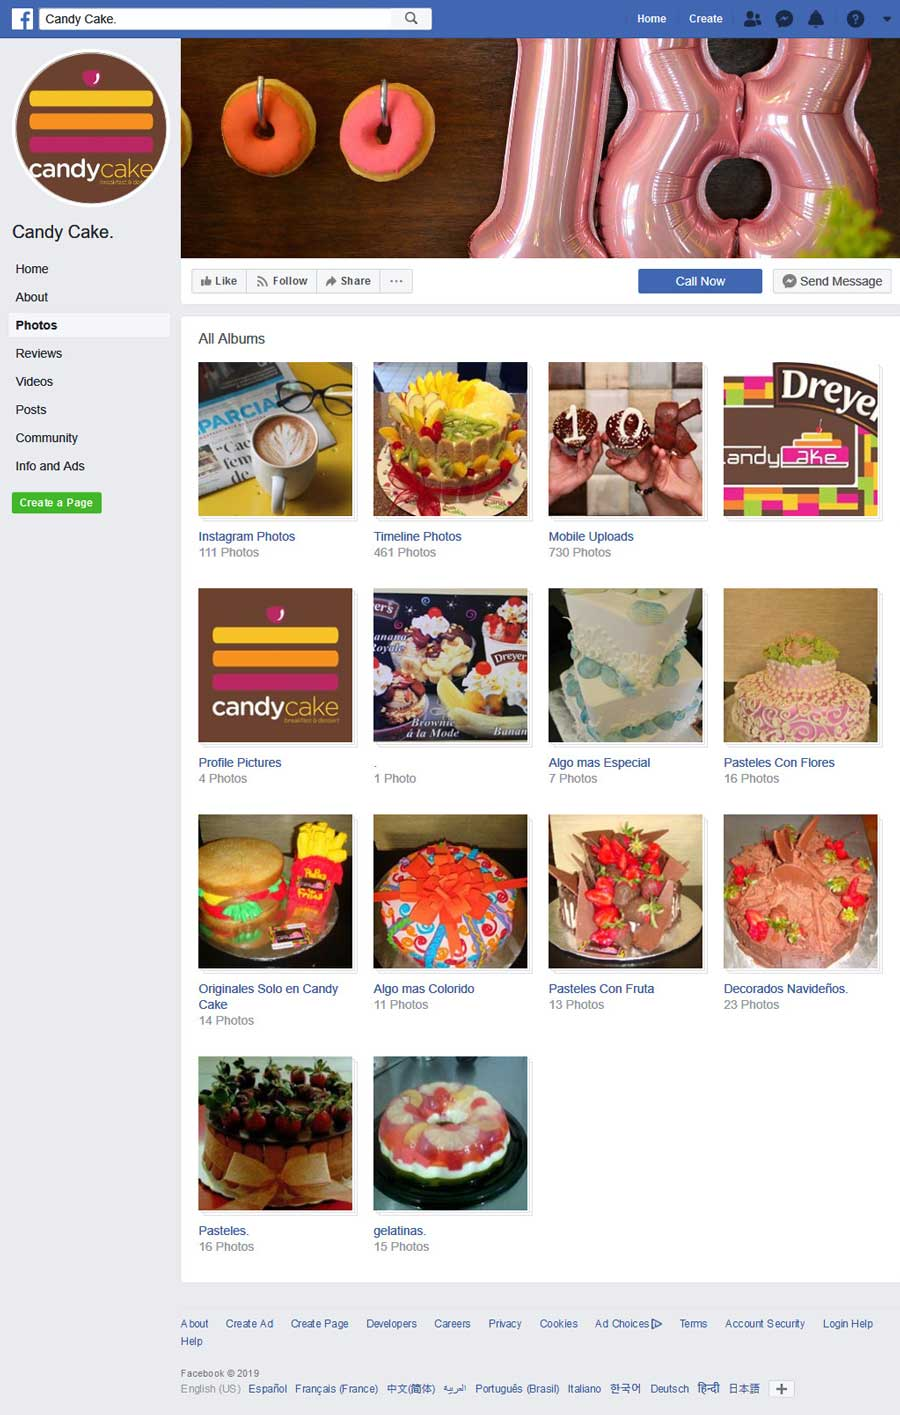 Restaurant Candy Cake in Rocky Point Mexico (Puerto Penasco). Click the Picture to Visit Candy Cake's Facebook Page Site!